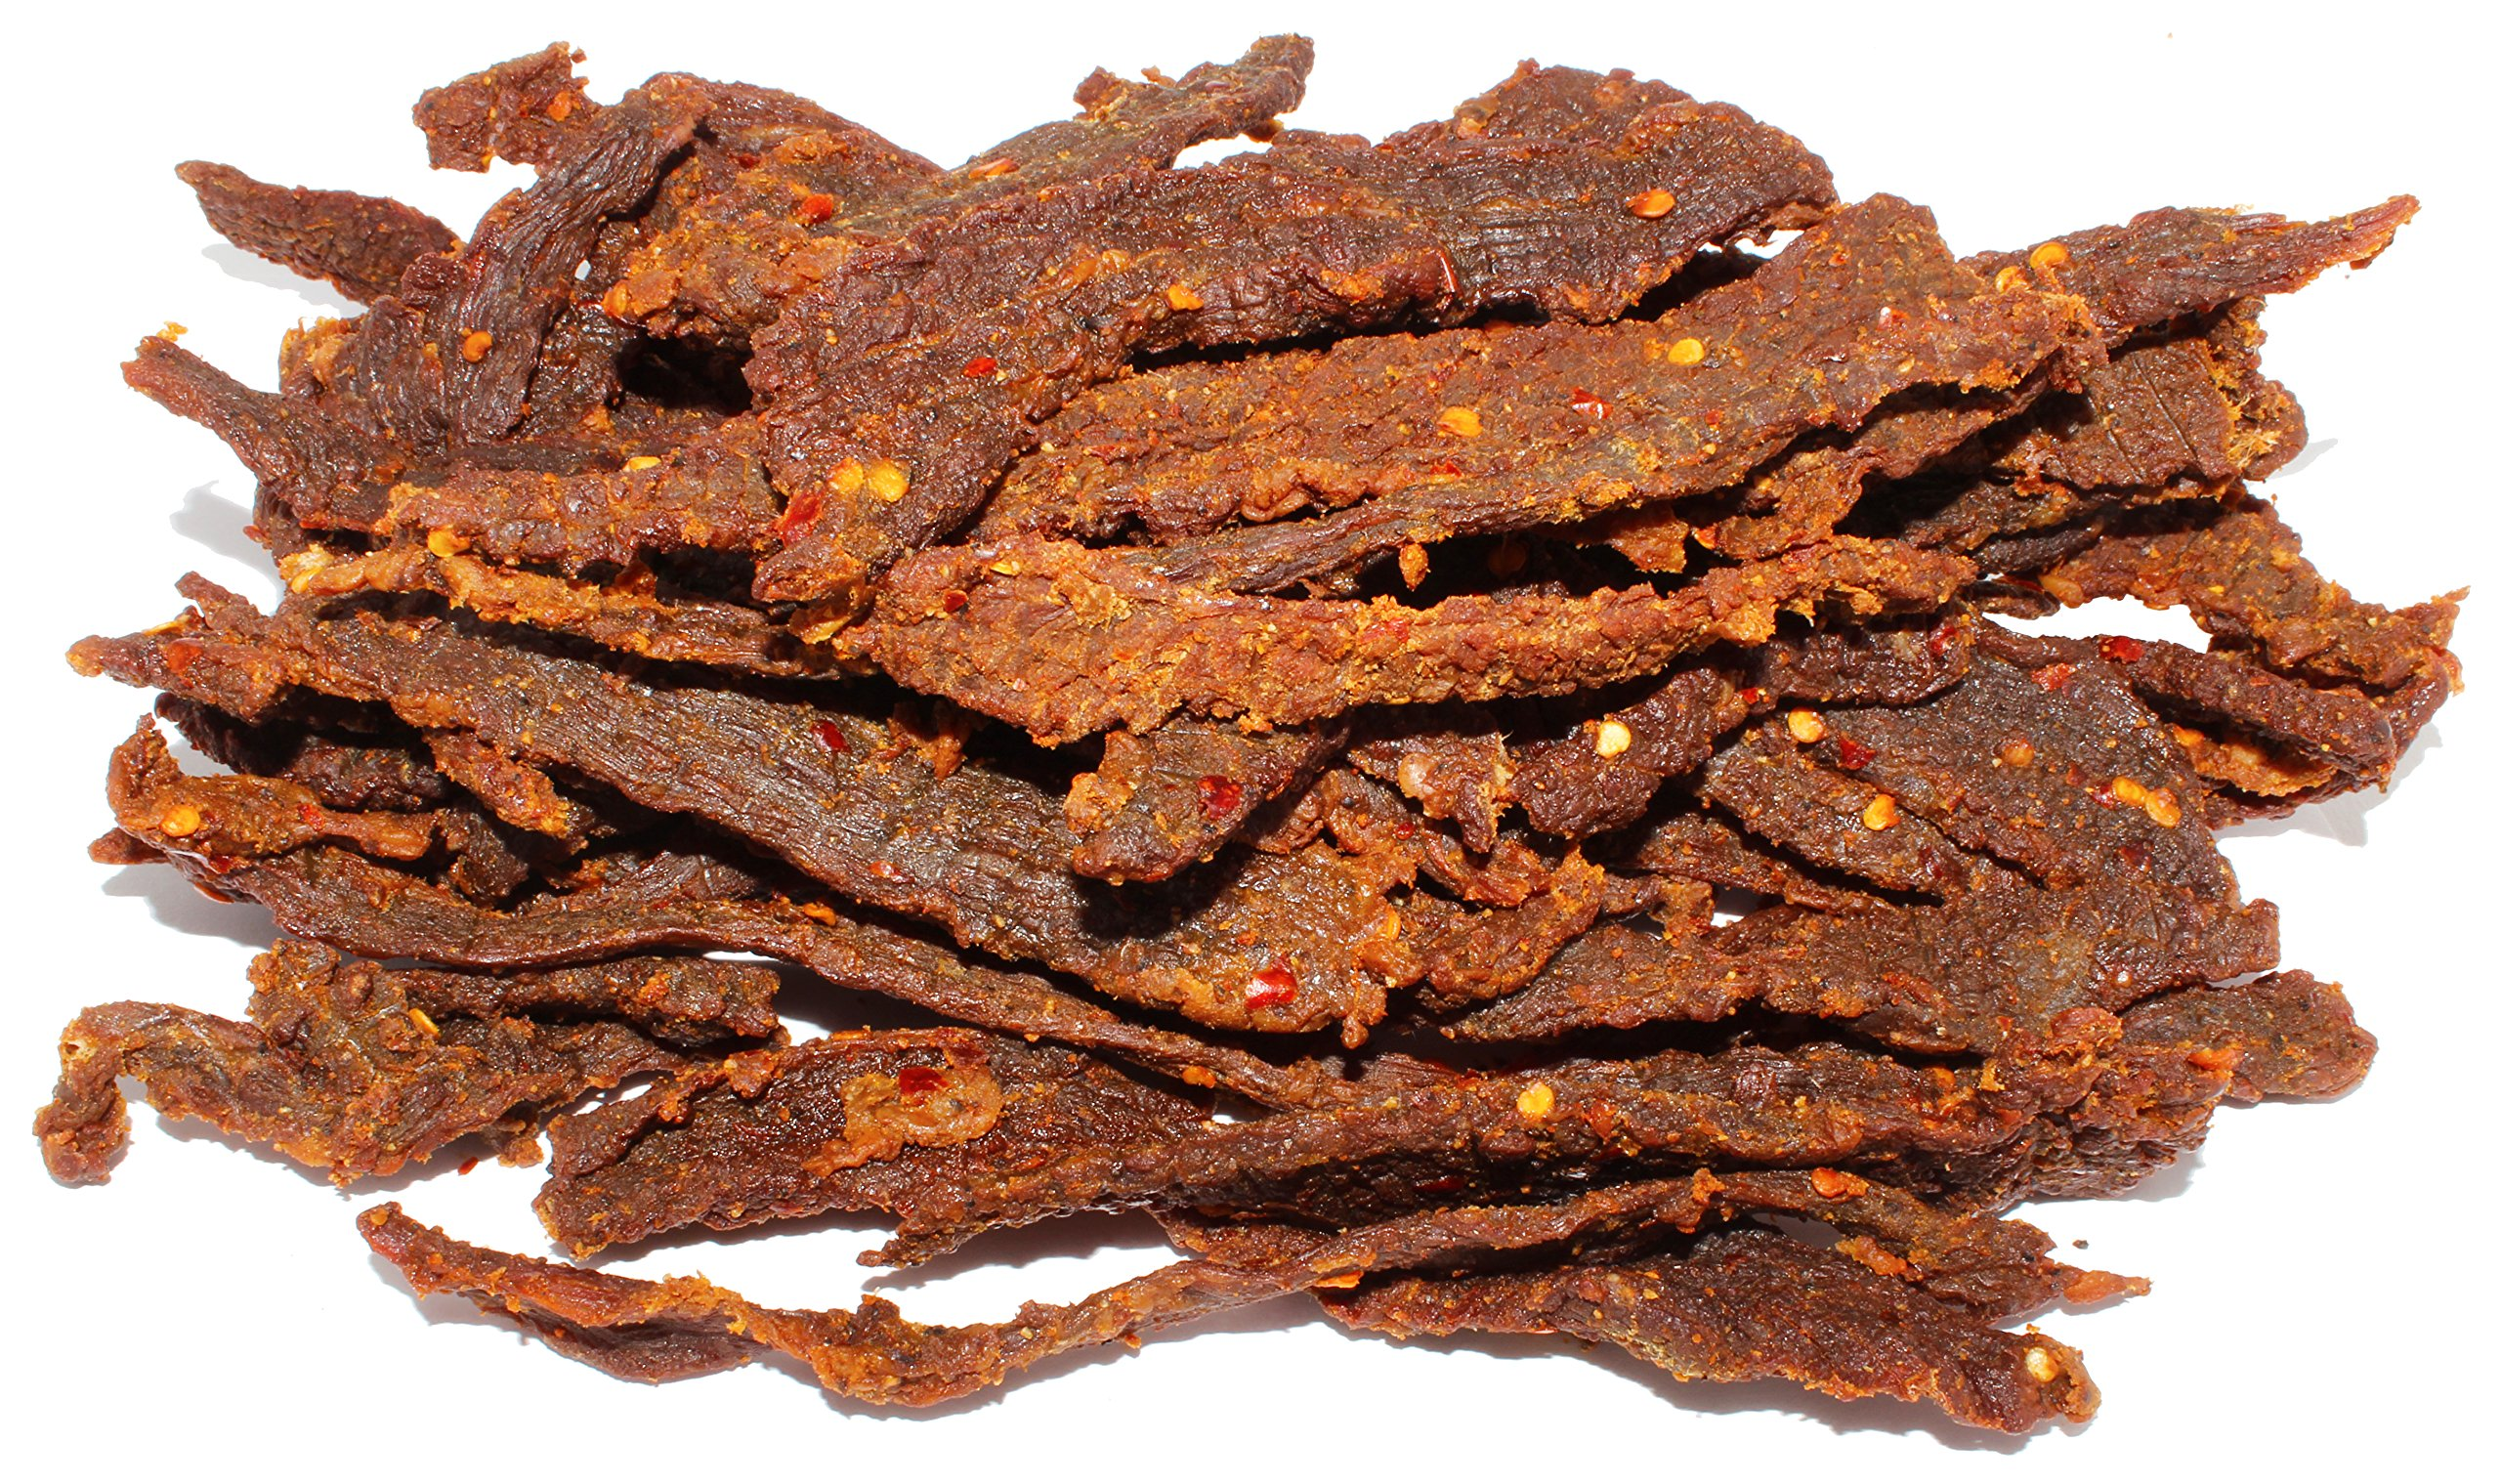 People's Choice Beef Jerky - Carne Seca - Limón Con Chile - Sugar-Free, Carb-Free, Gluten-Free, Keto-Friendly Meat Snack - 1 Pound Bag by People's Choice Beef Jerky